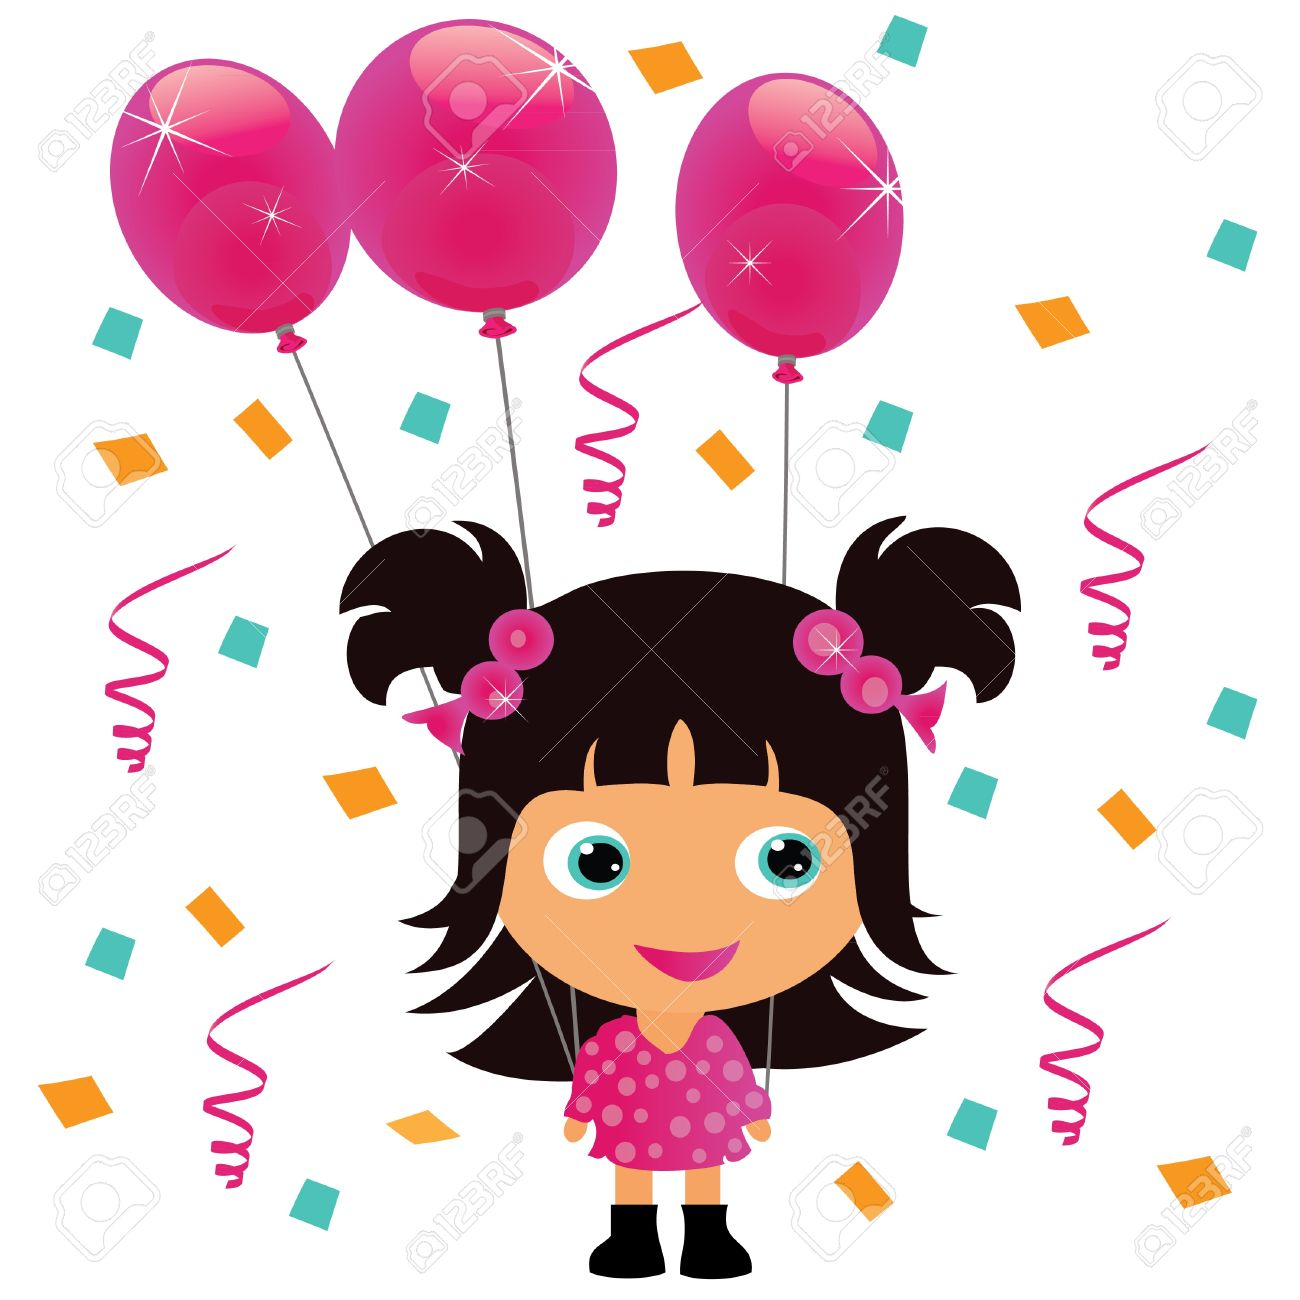 girl birthday Little Girl With Pink Balloon Birthday Party Royalty Free Cliparts  girl birthday